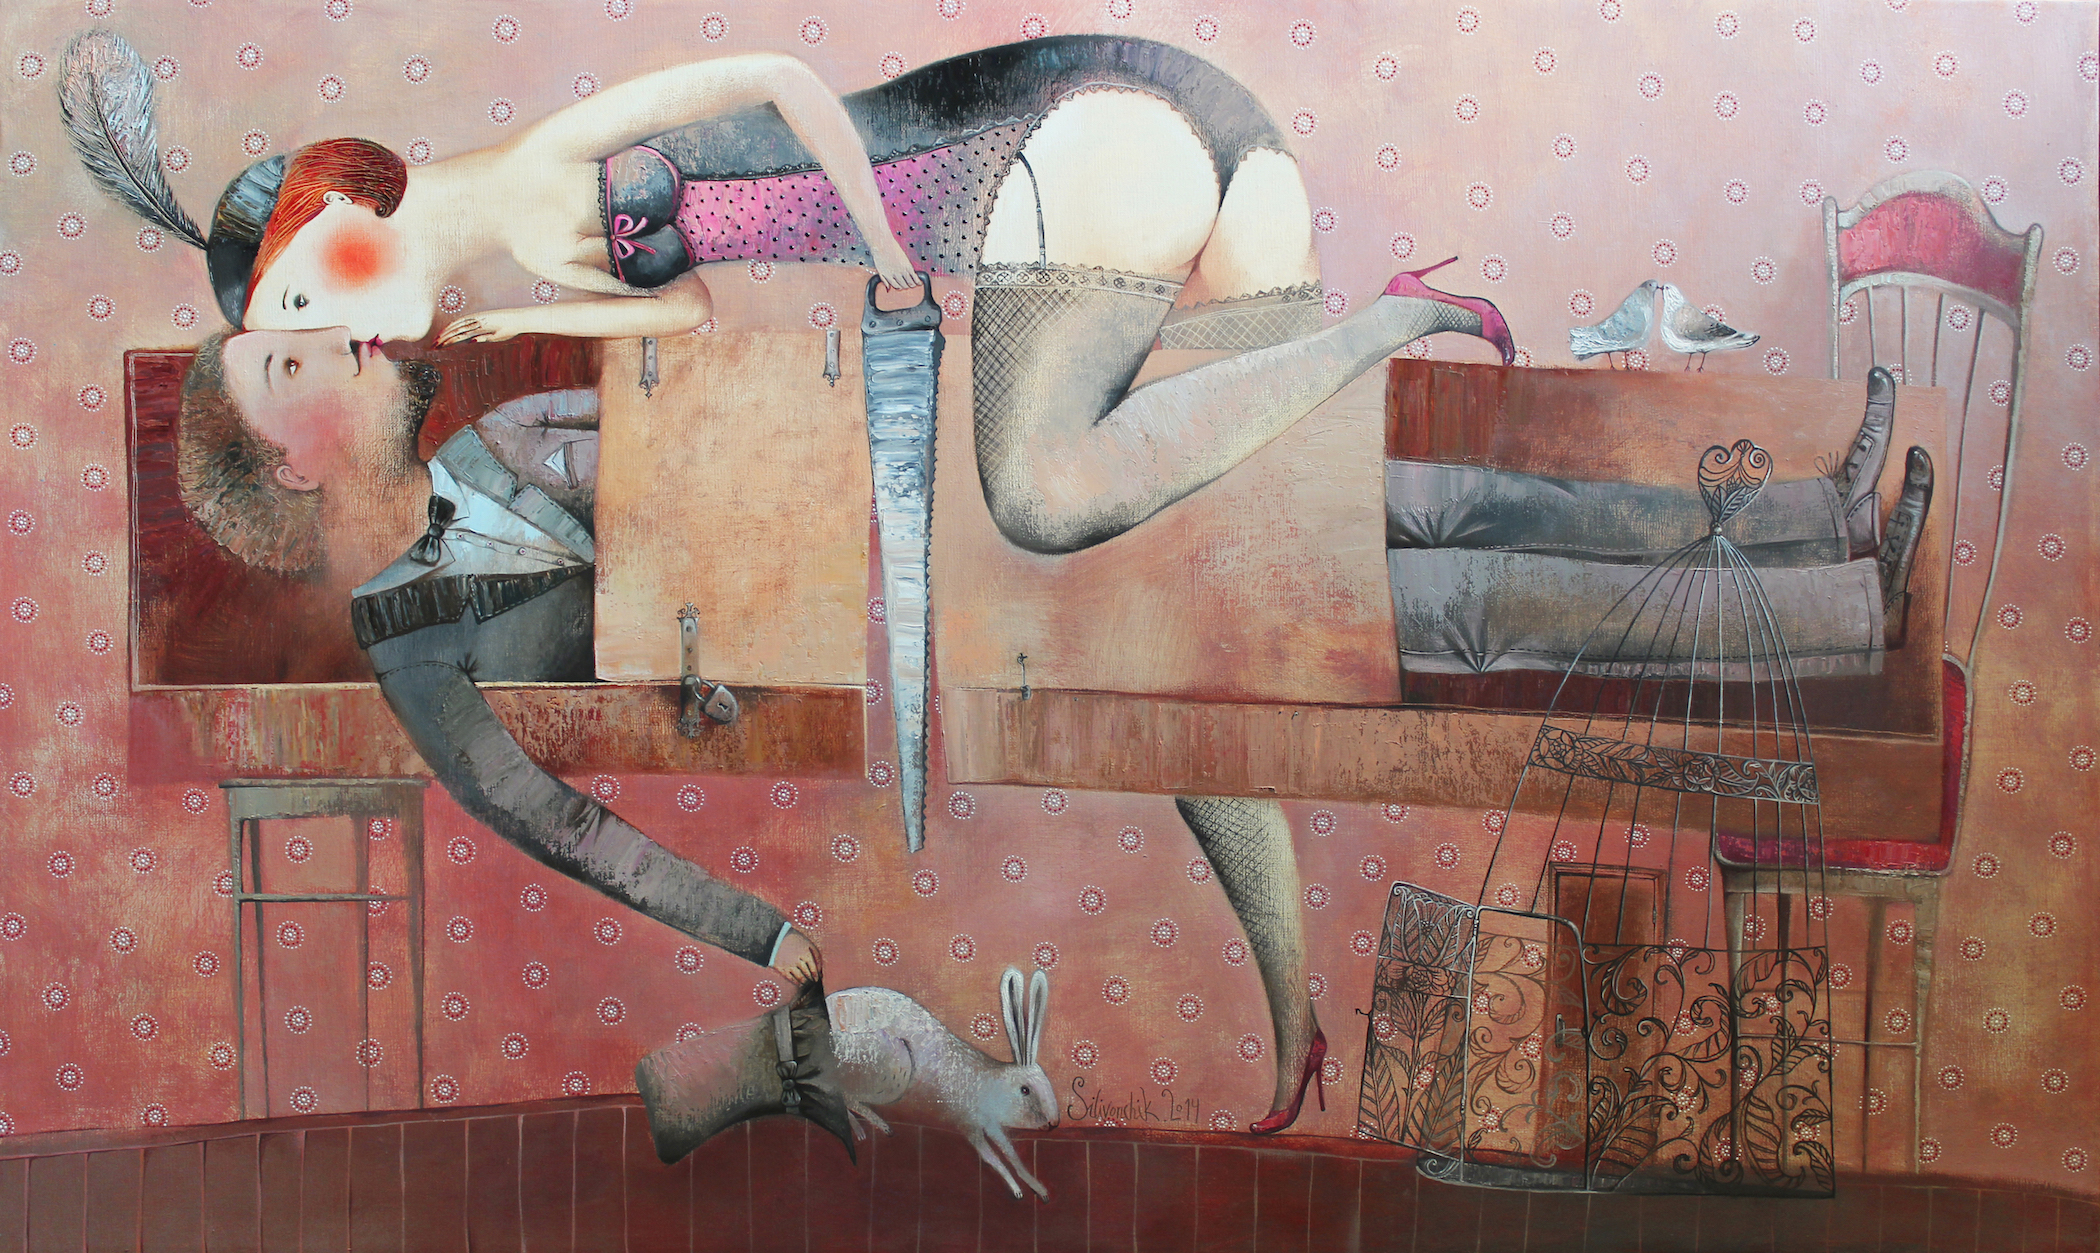 Anna Silivonchik, Illusion of Love, 2014, Oil on Canvas, 28 x 47 in (70 x 120cm)